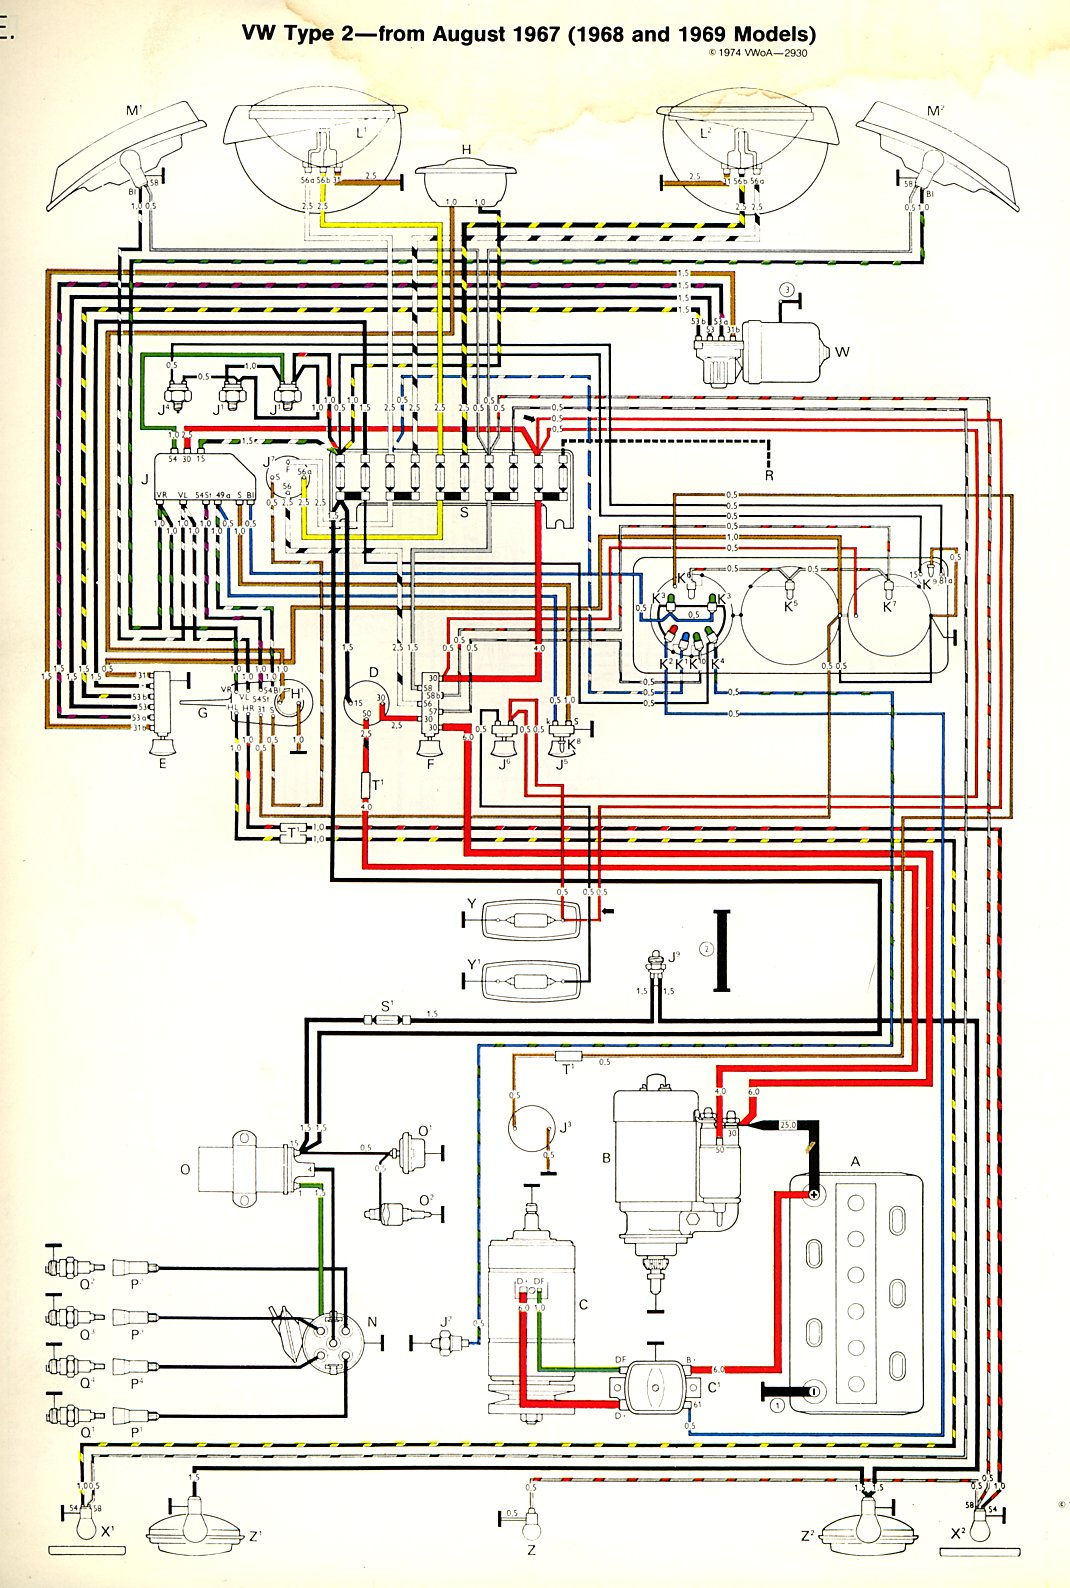 baybus_6869a vw bus wiring diagram 1965 vw bus wiring diagram \u2022 wiring diagrams 1974 vw beetle wiring diagram at virtualis.co